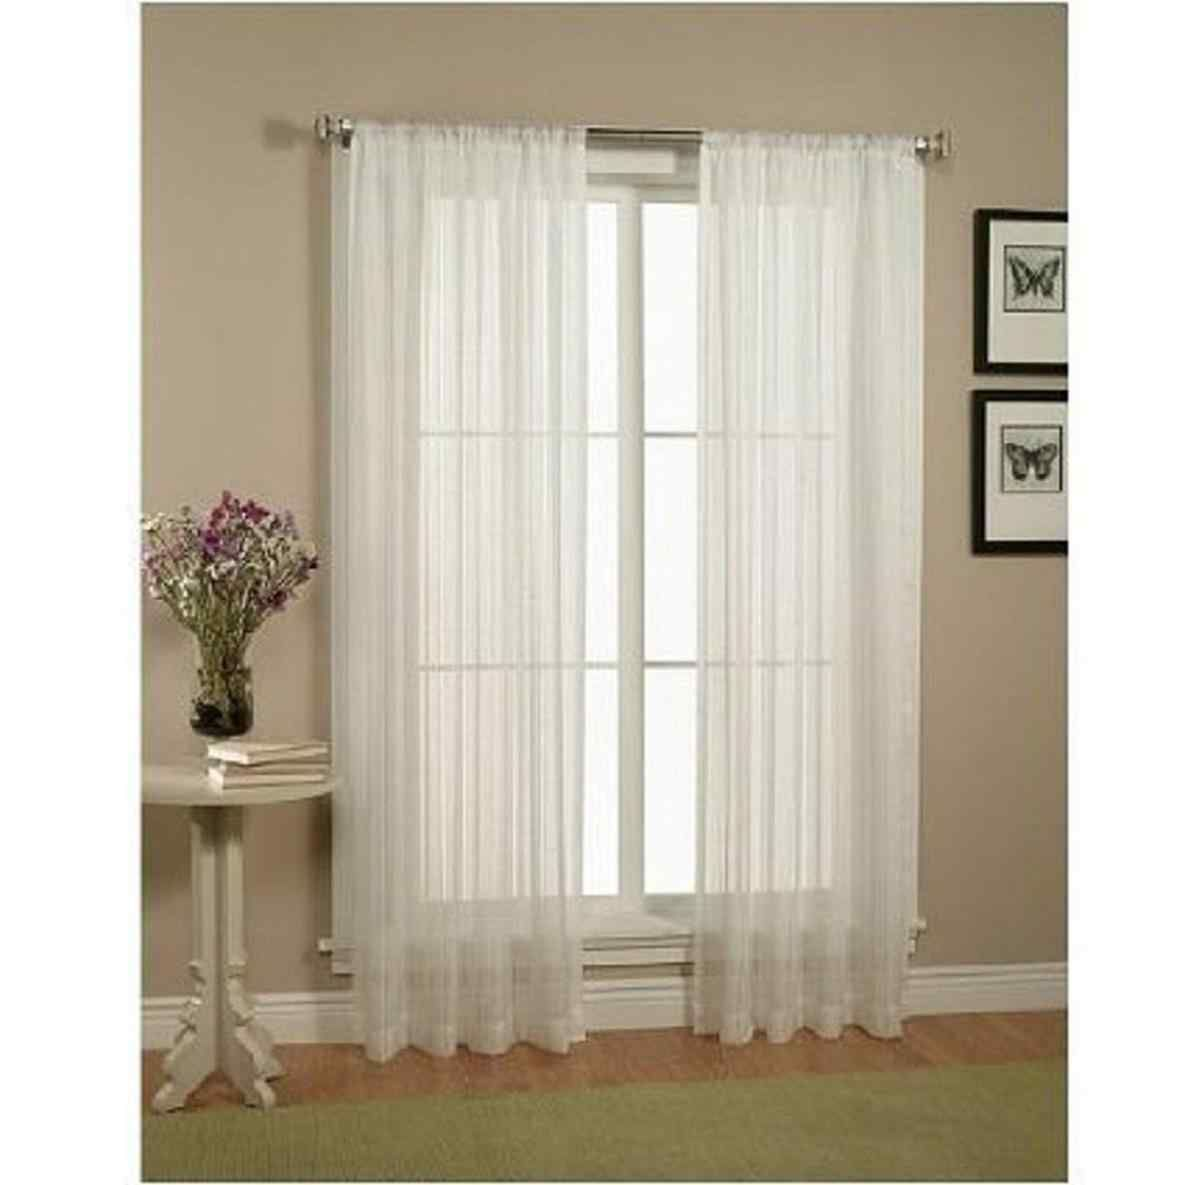 19 Top Curtains Inside Window Frame You Must See White Sheer